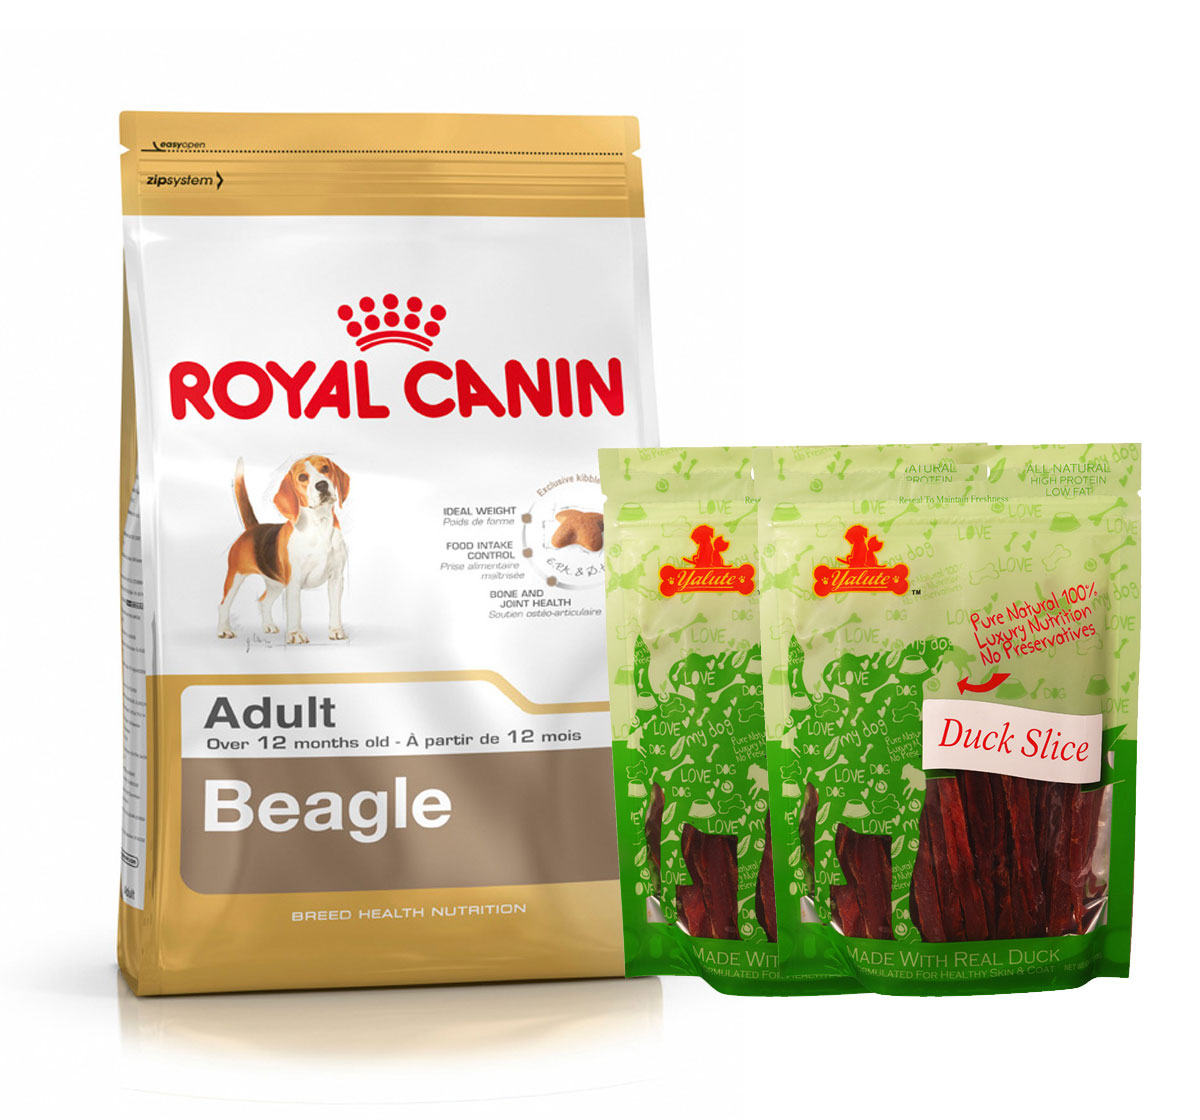 Royal Canin Beagle Adult - 3 Kg  With Duck Slices